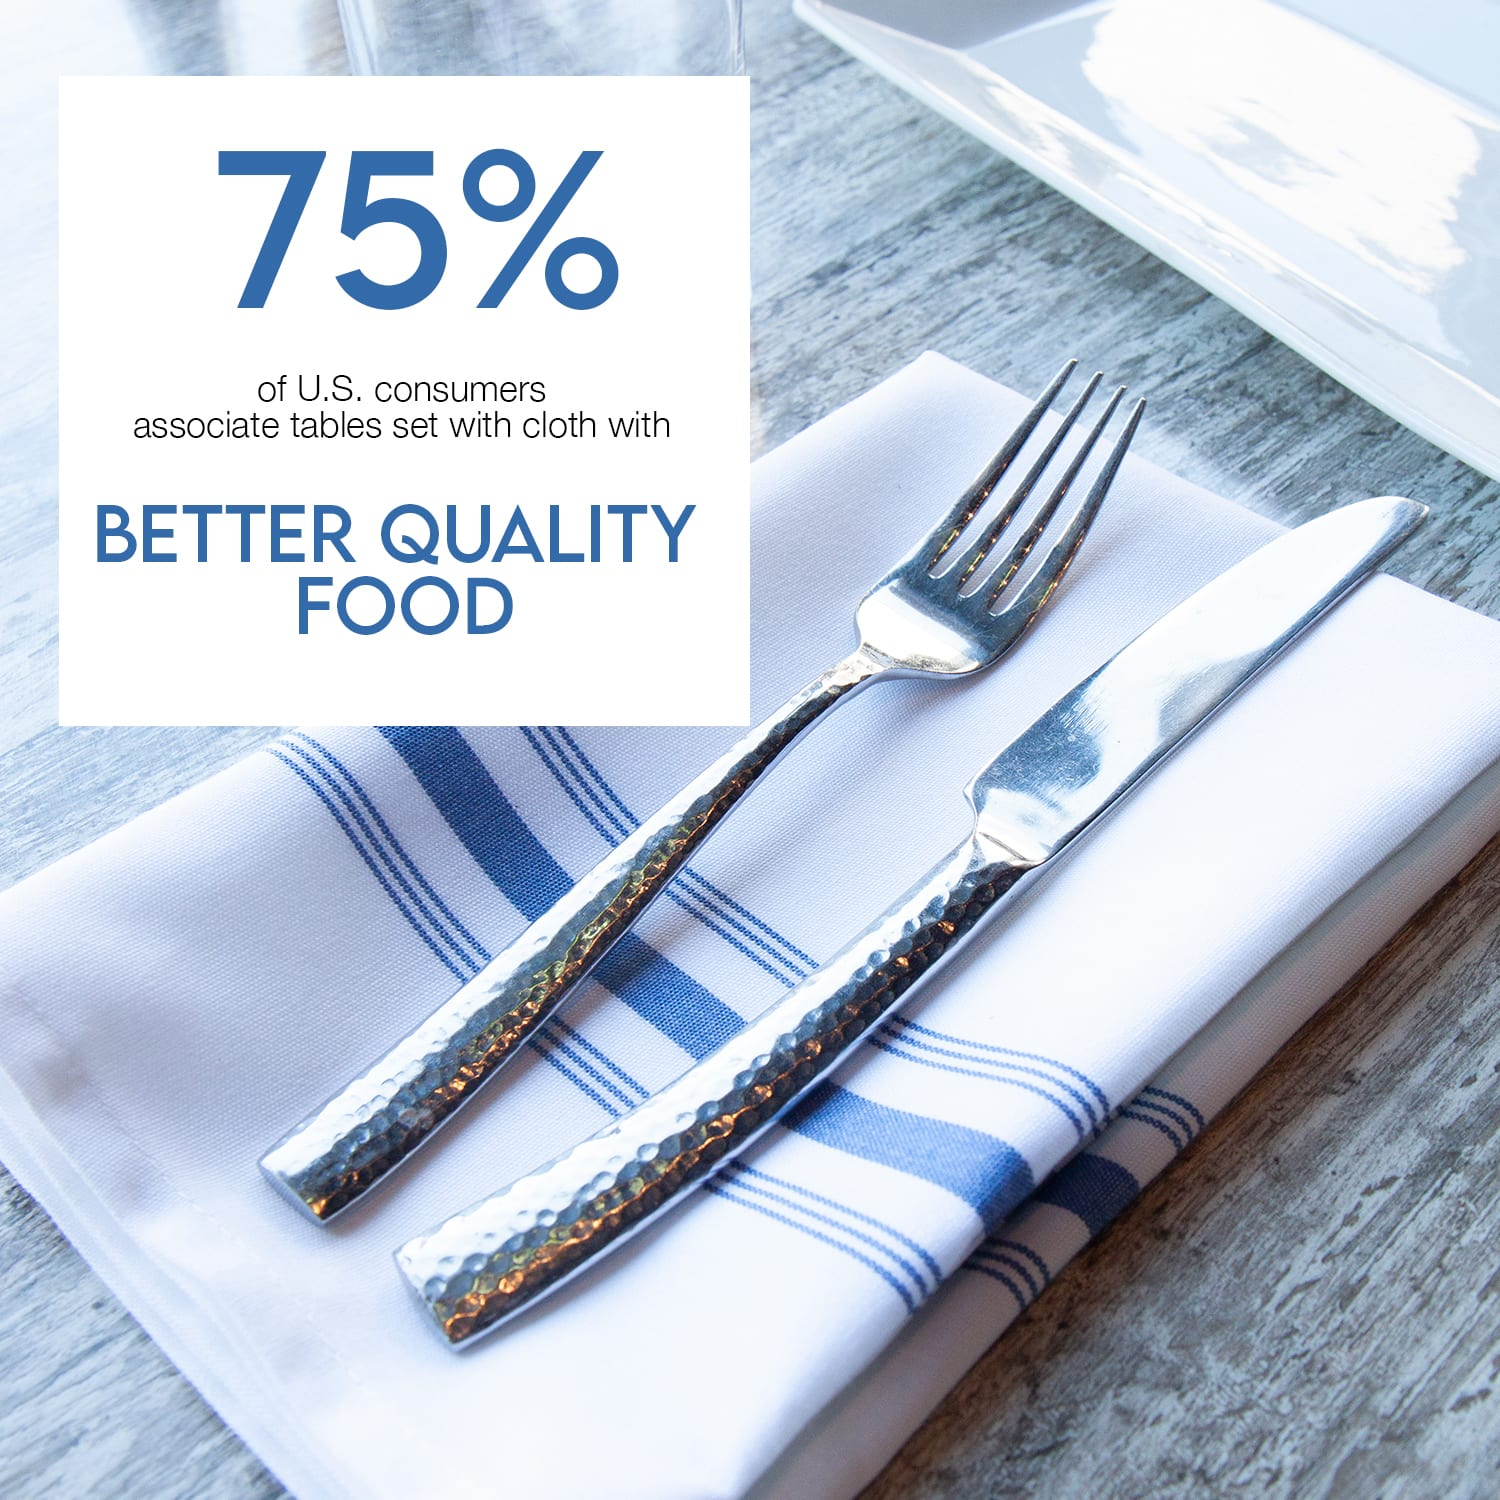 BISTRO-GROUP better quality food